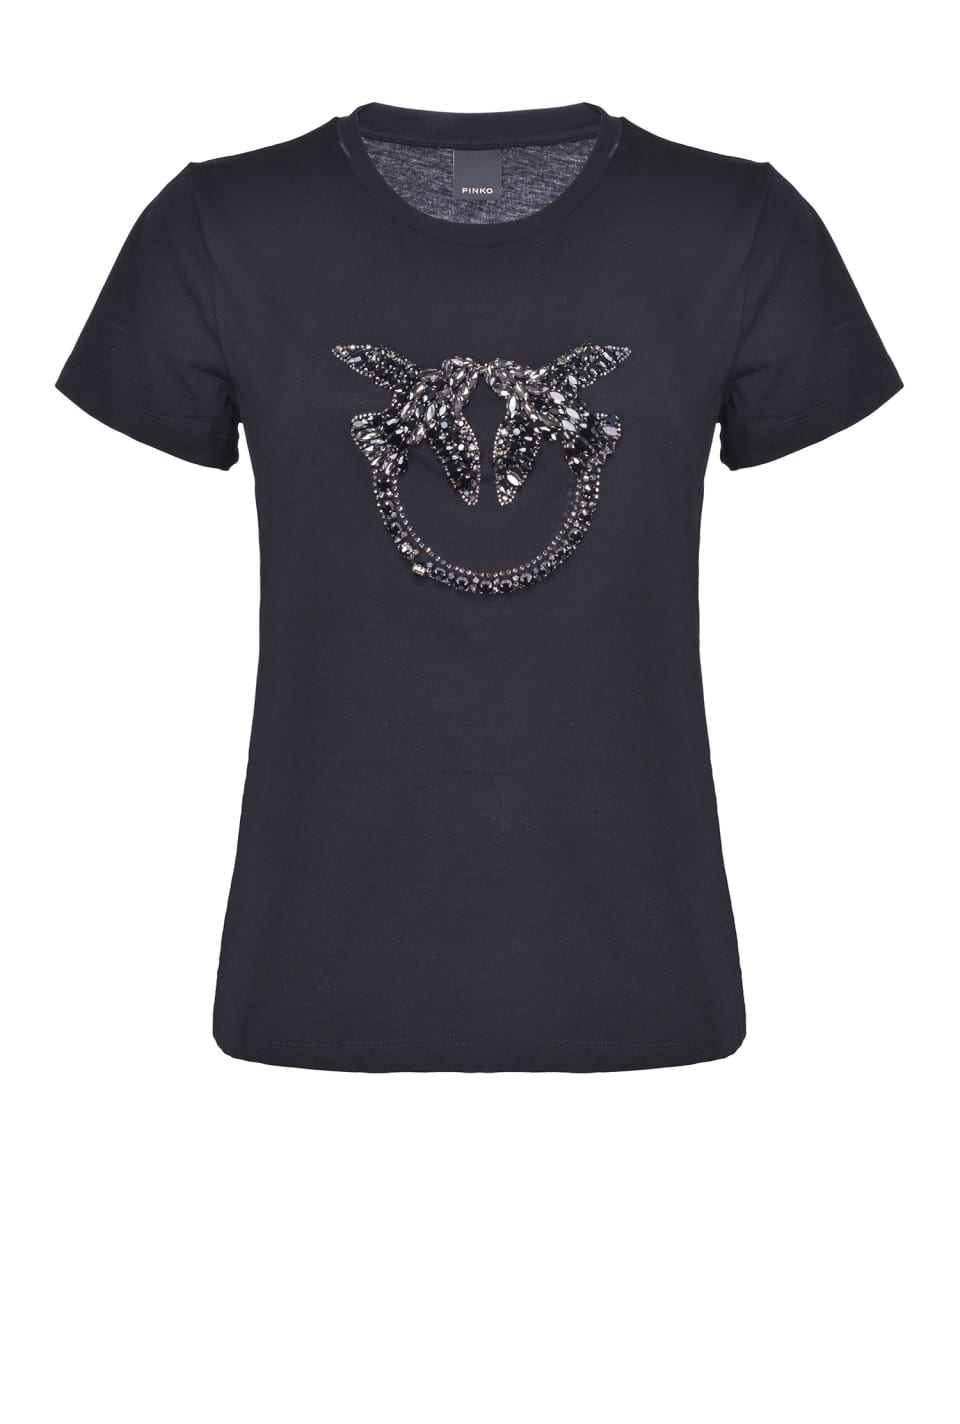 Shiny Love Birds embroidery T-shirt